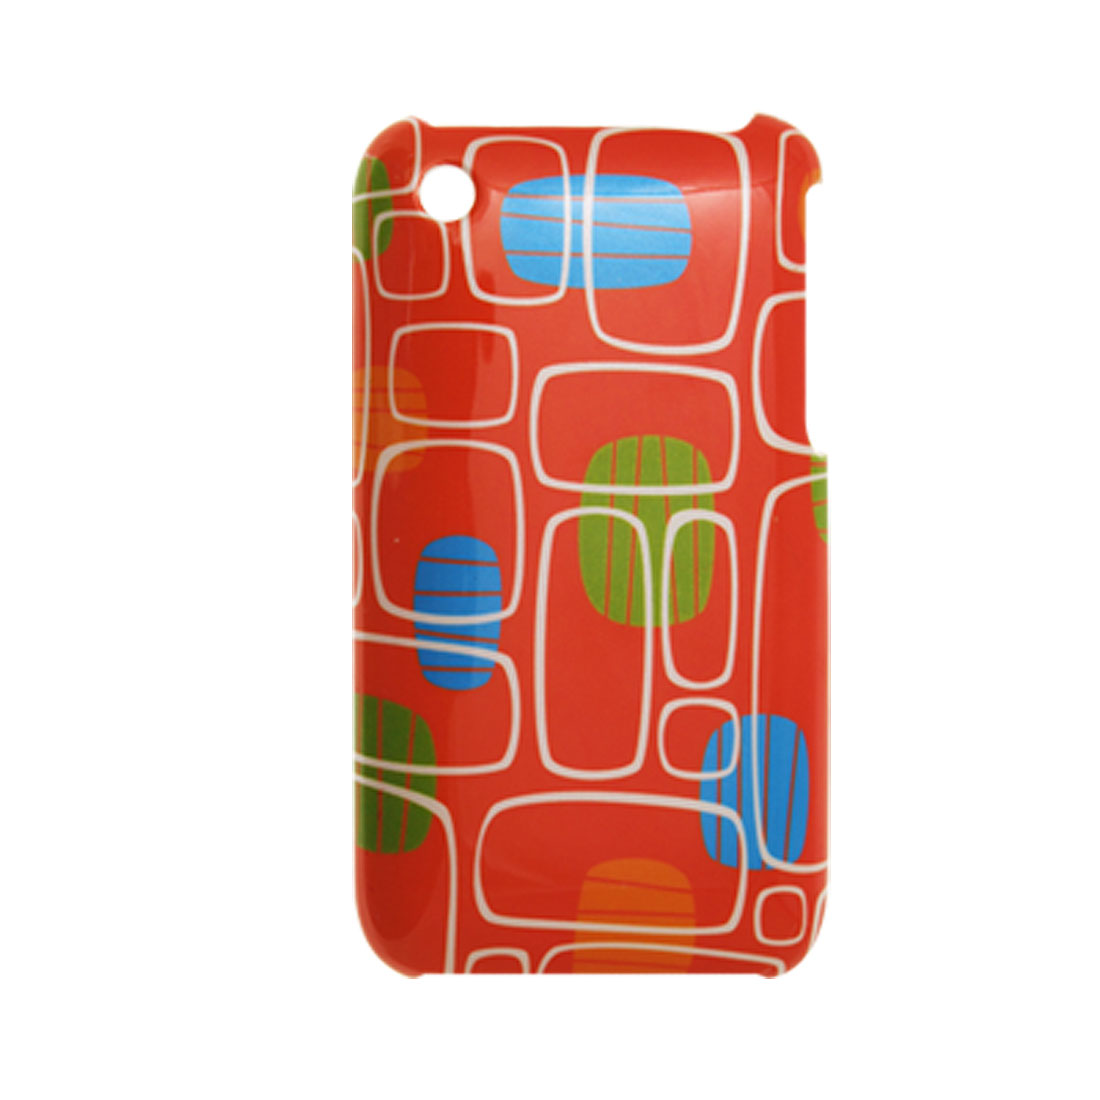 Orange Plastic Case Protector w Patterns for iPhone 3G